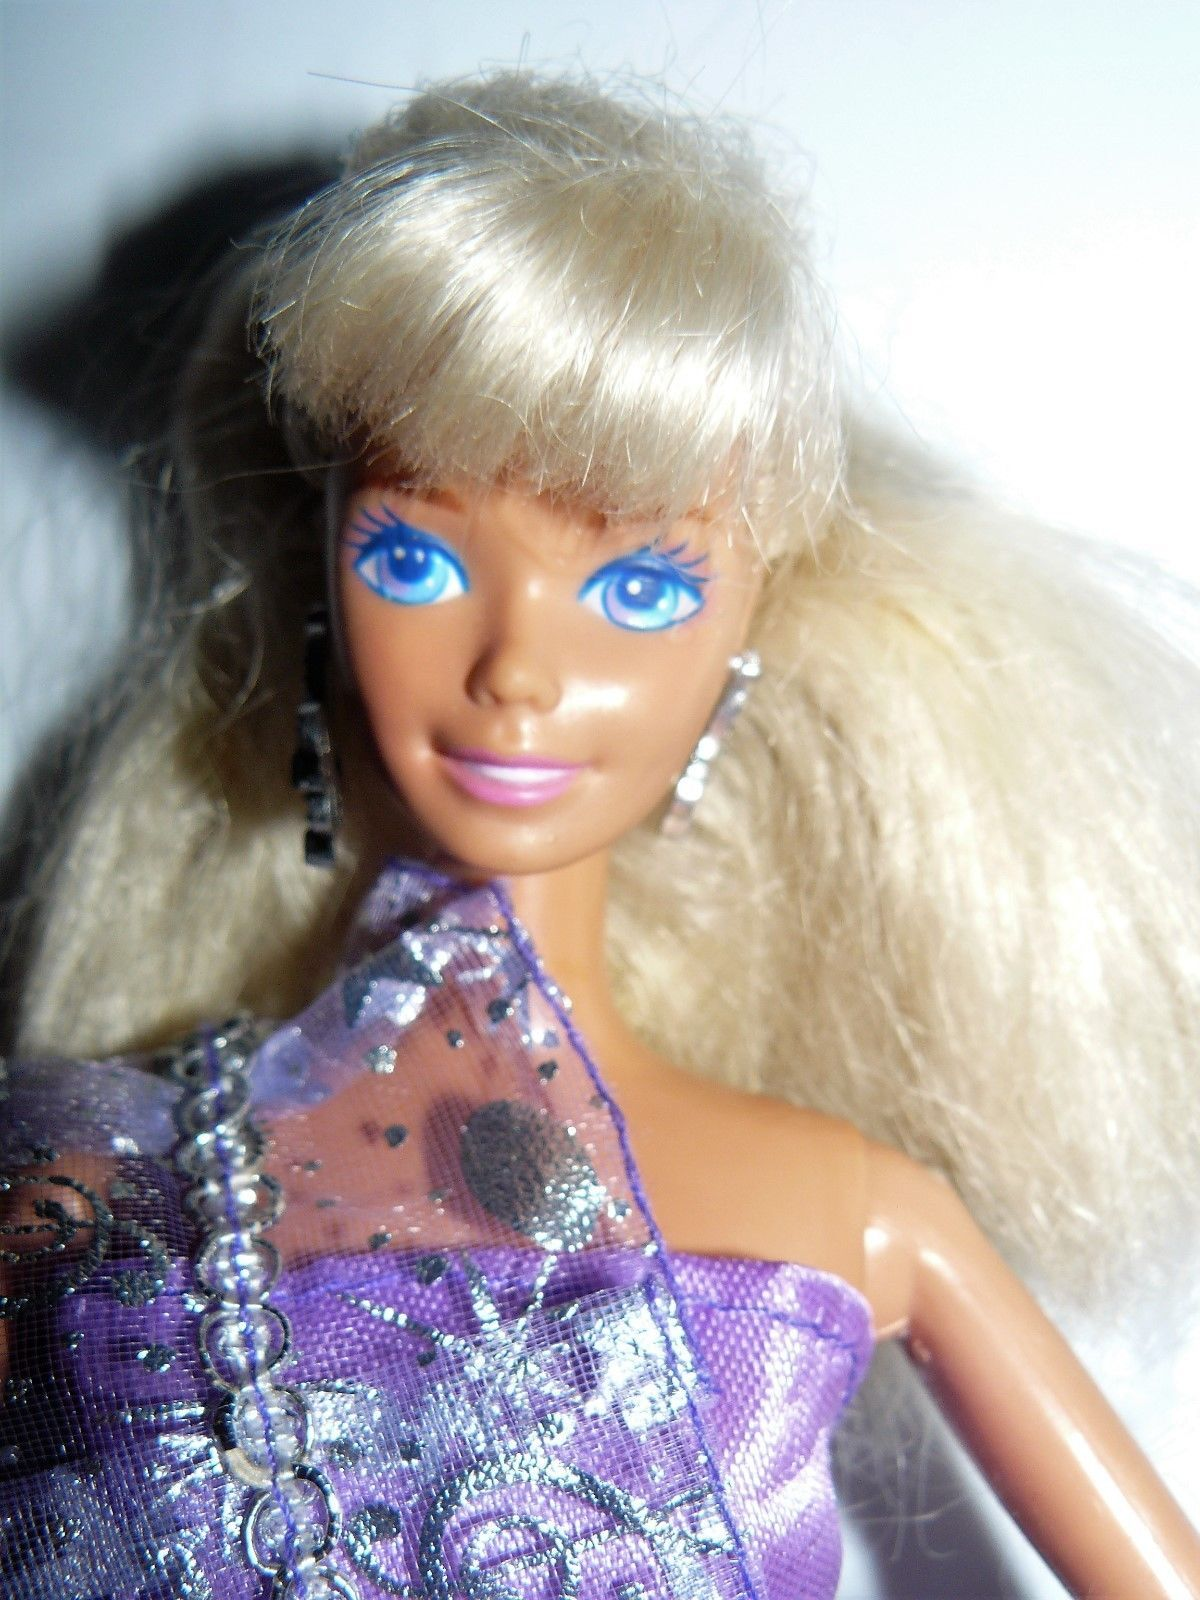 6e577656a0af S l1600. S l1600. Previous. Mattel 1980s Twist N Turn Blond Barbie doll in purple  dress white shoes earring